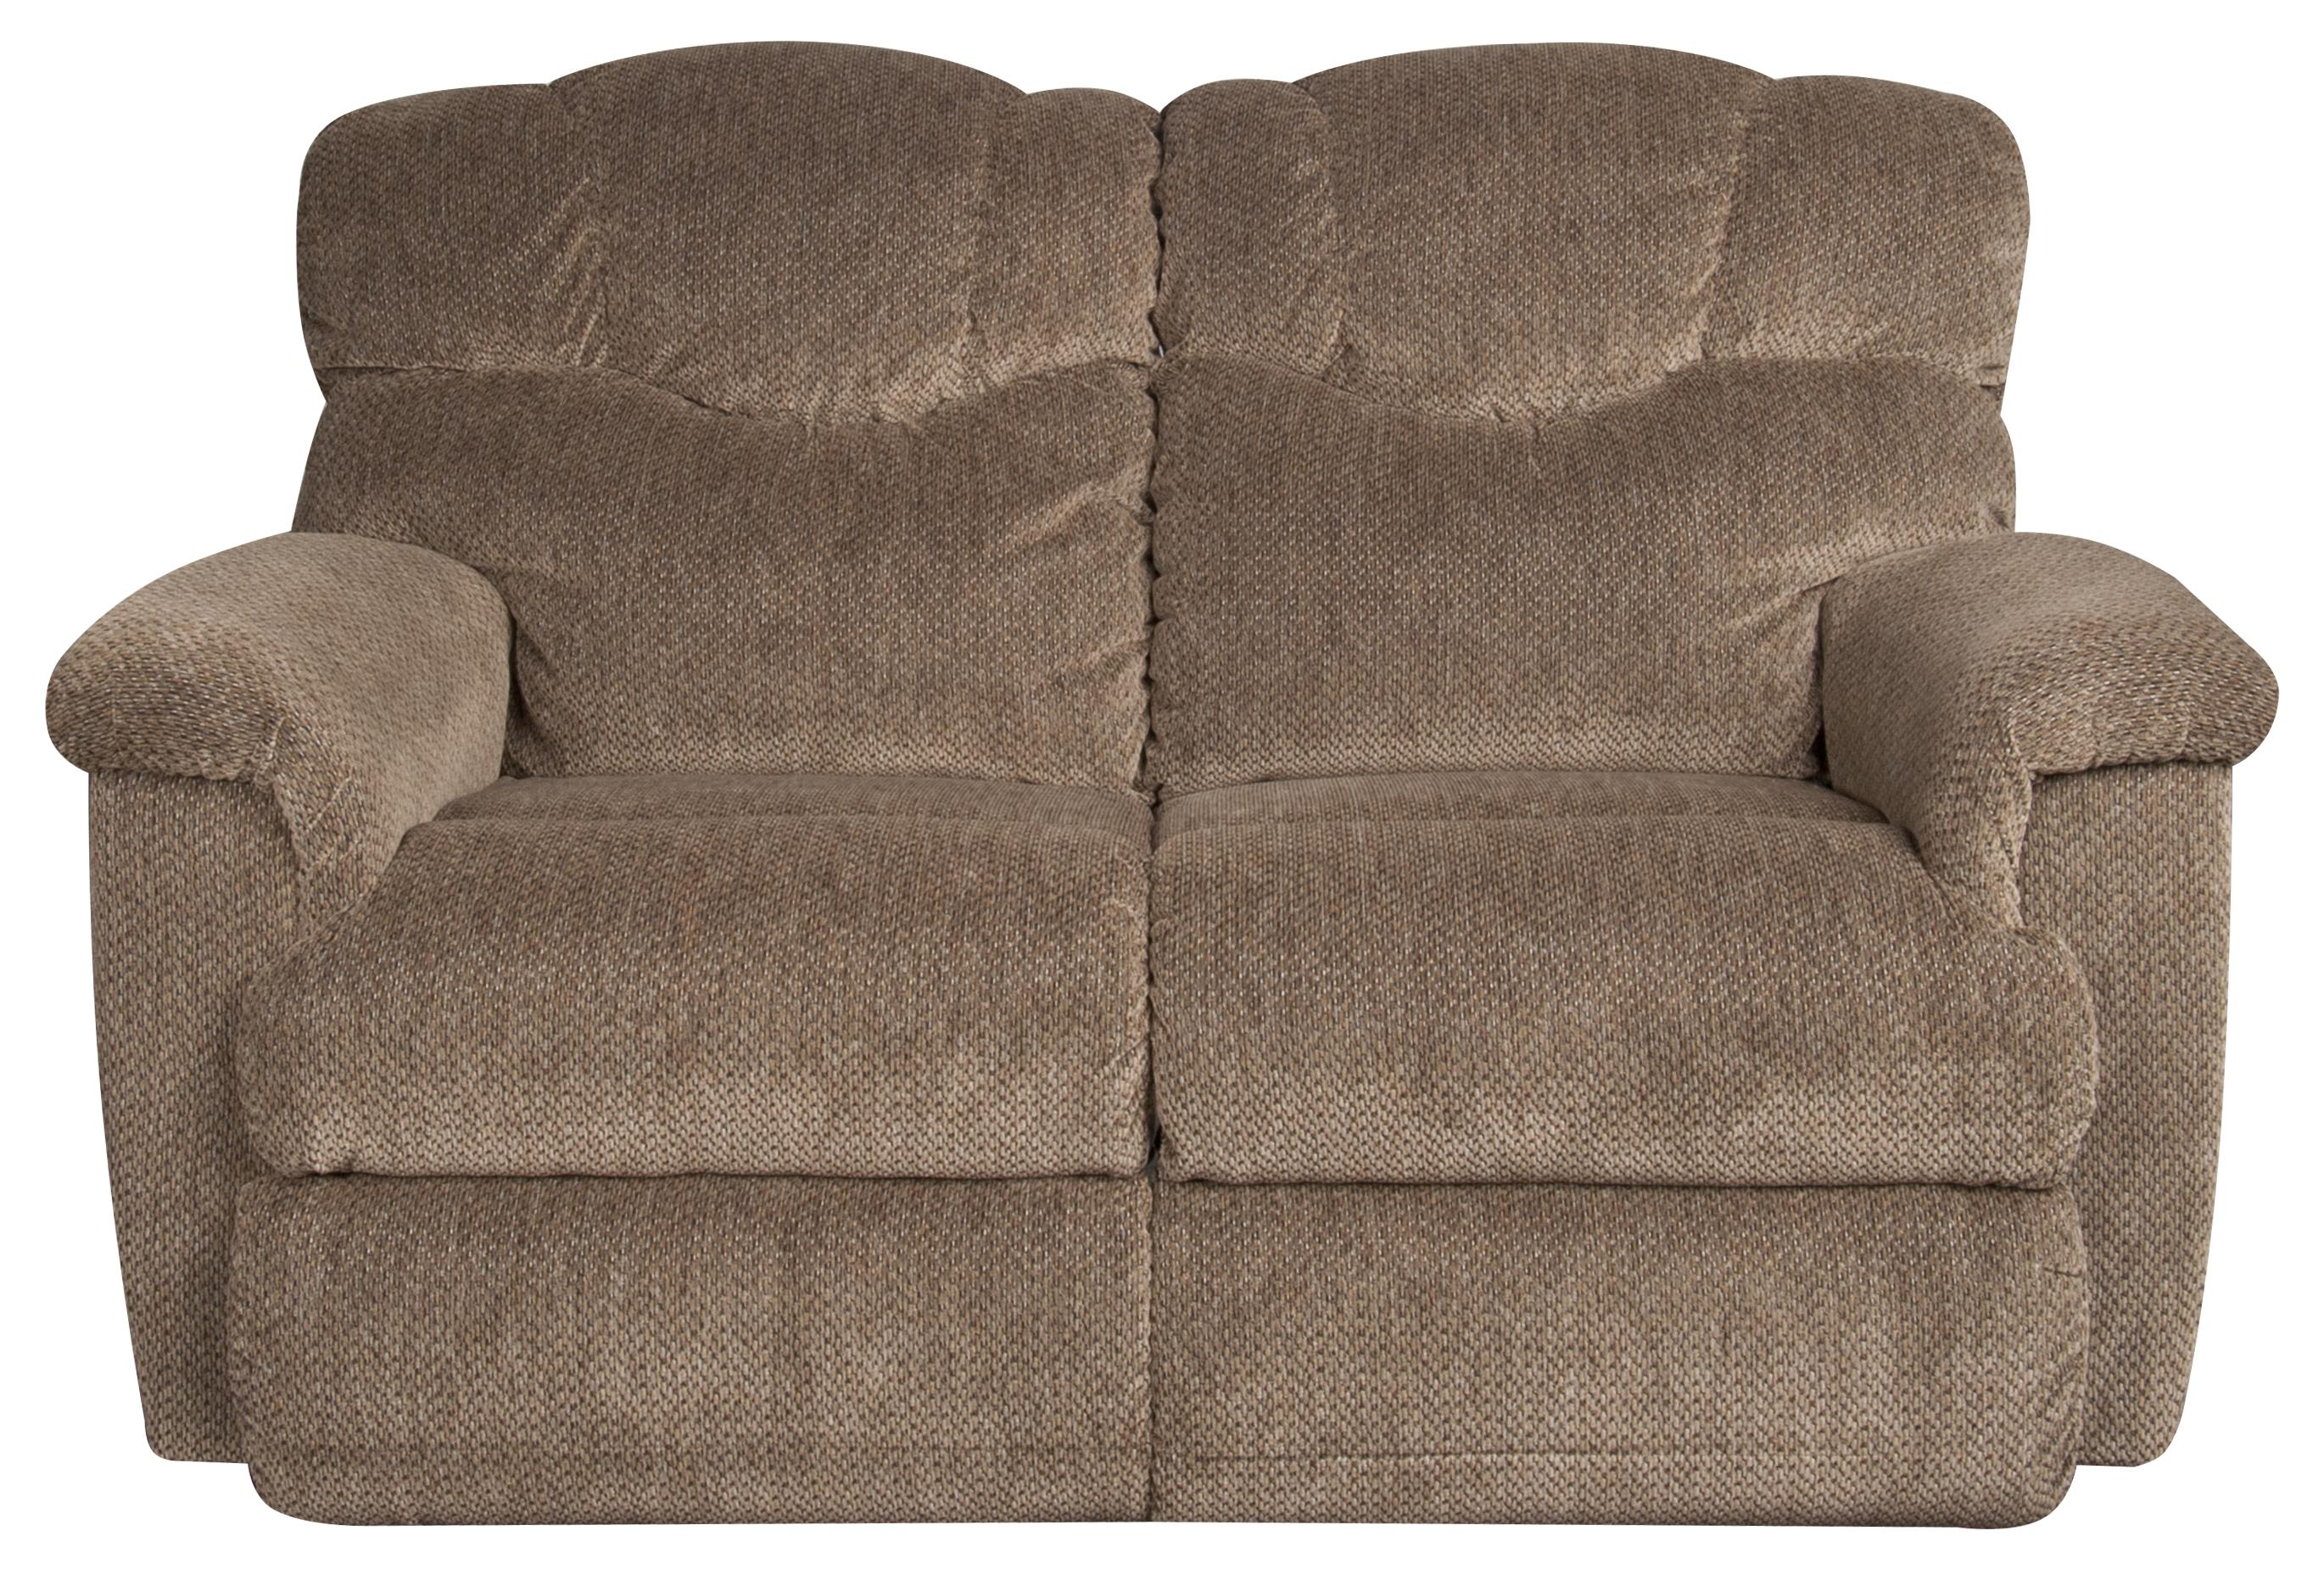 La-Z-Boy Lancer Lancer Reclining Loveseat - Item Number: 933201791